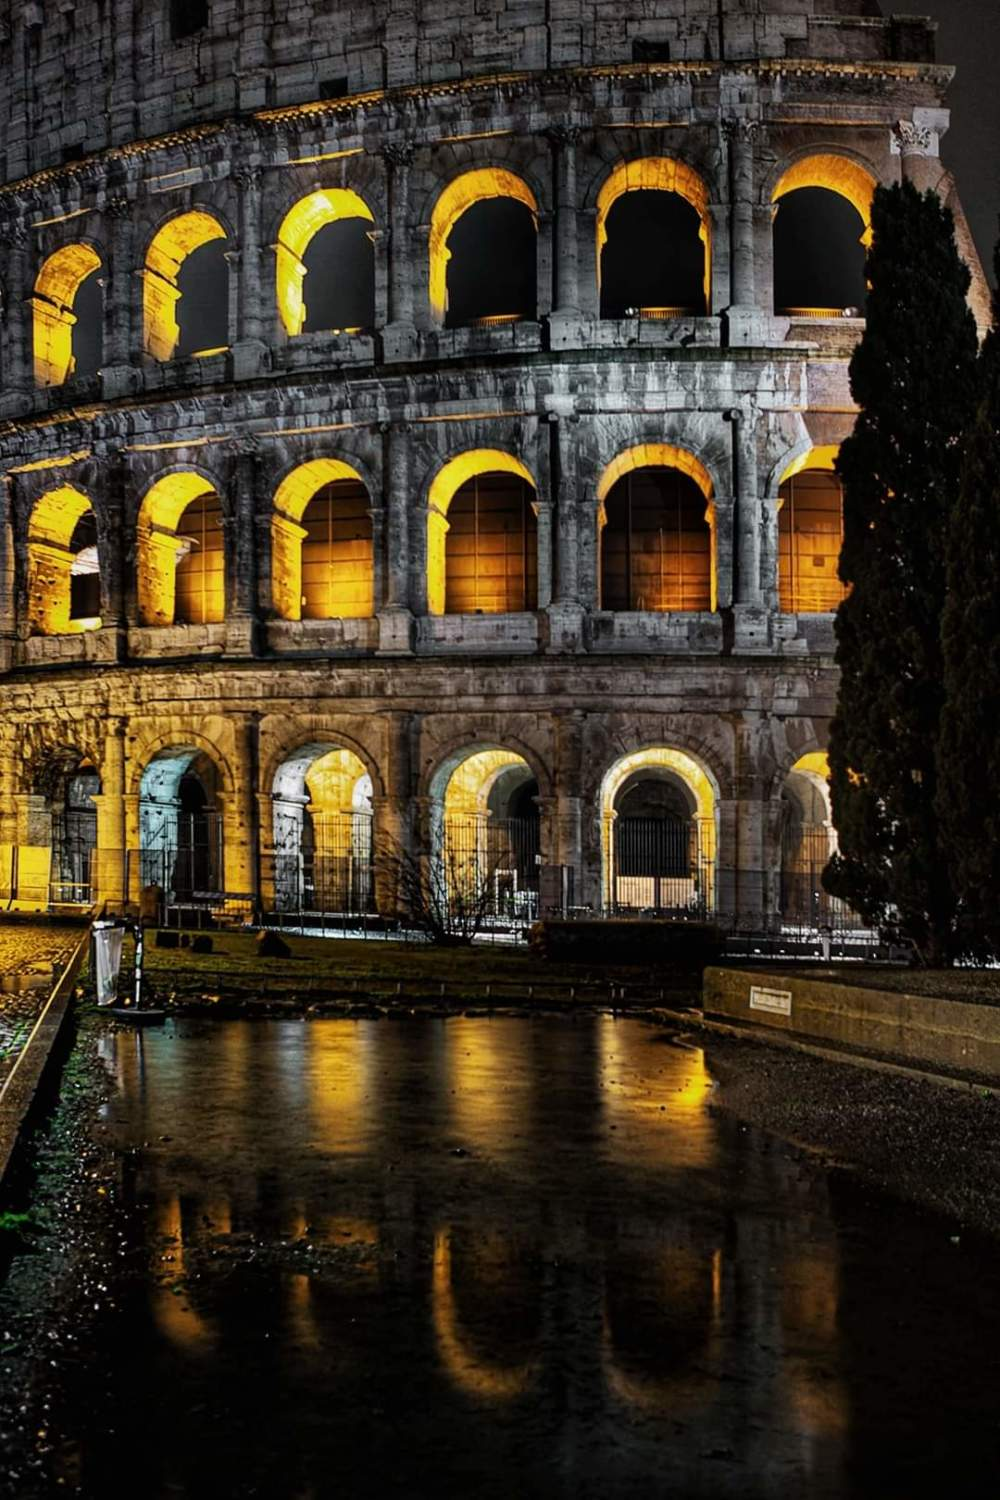 Rome in the time of lockdown